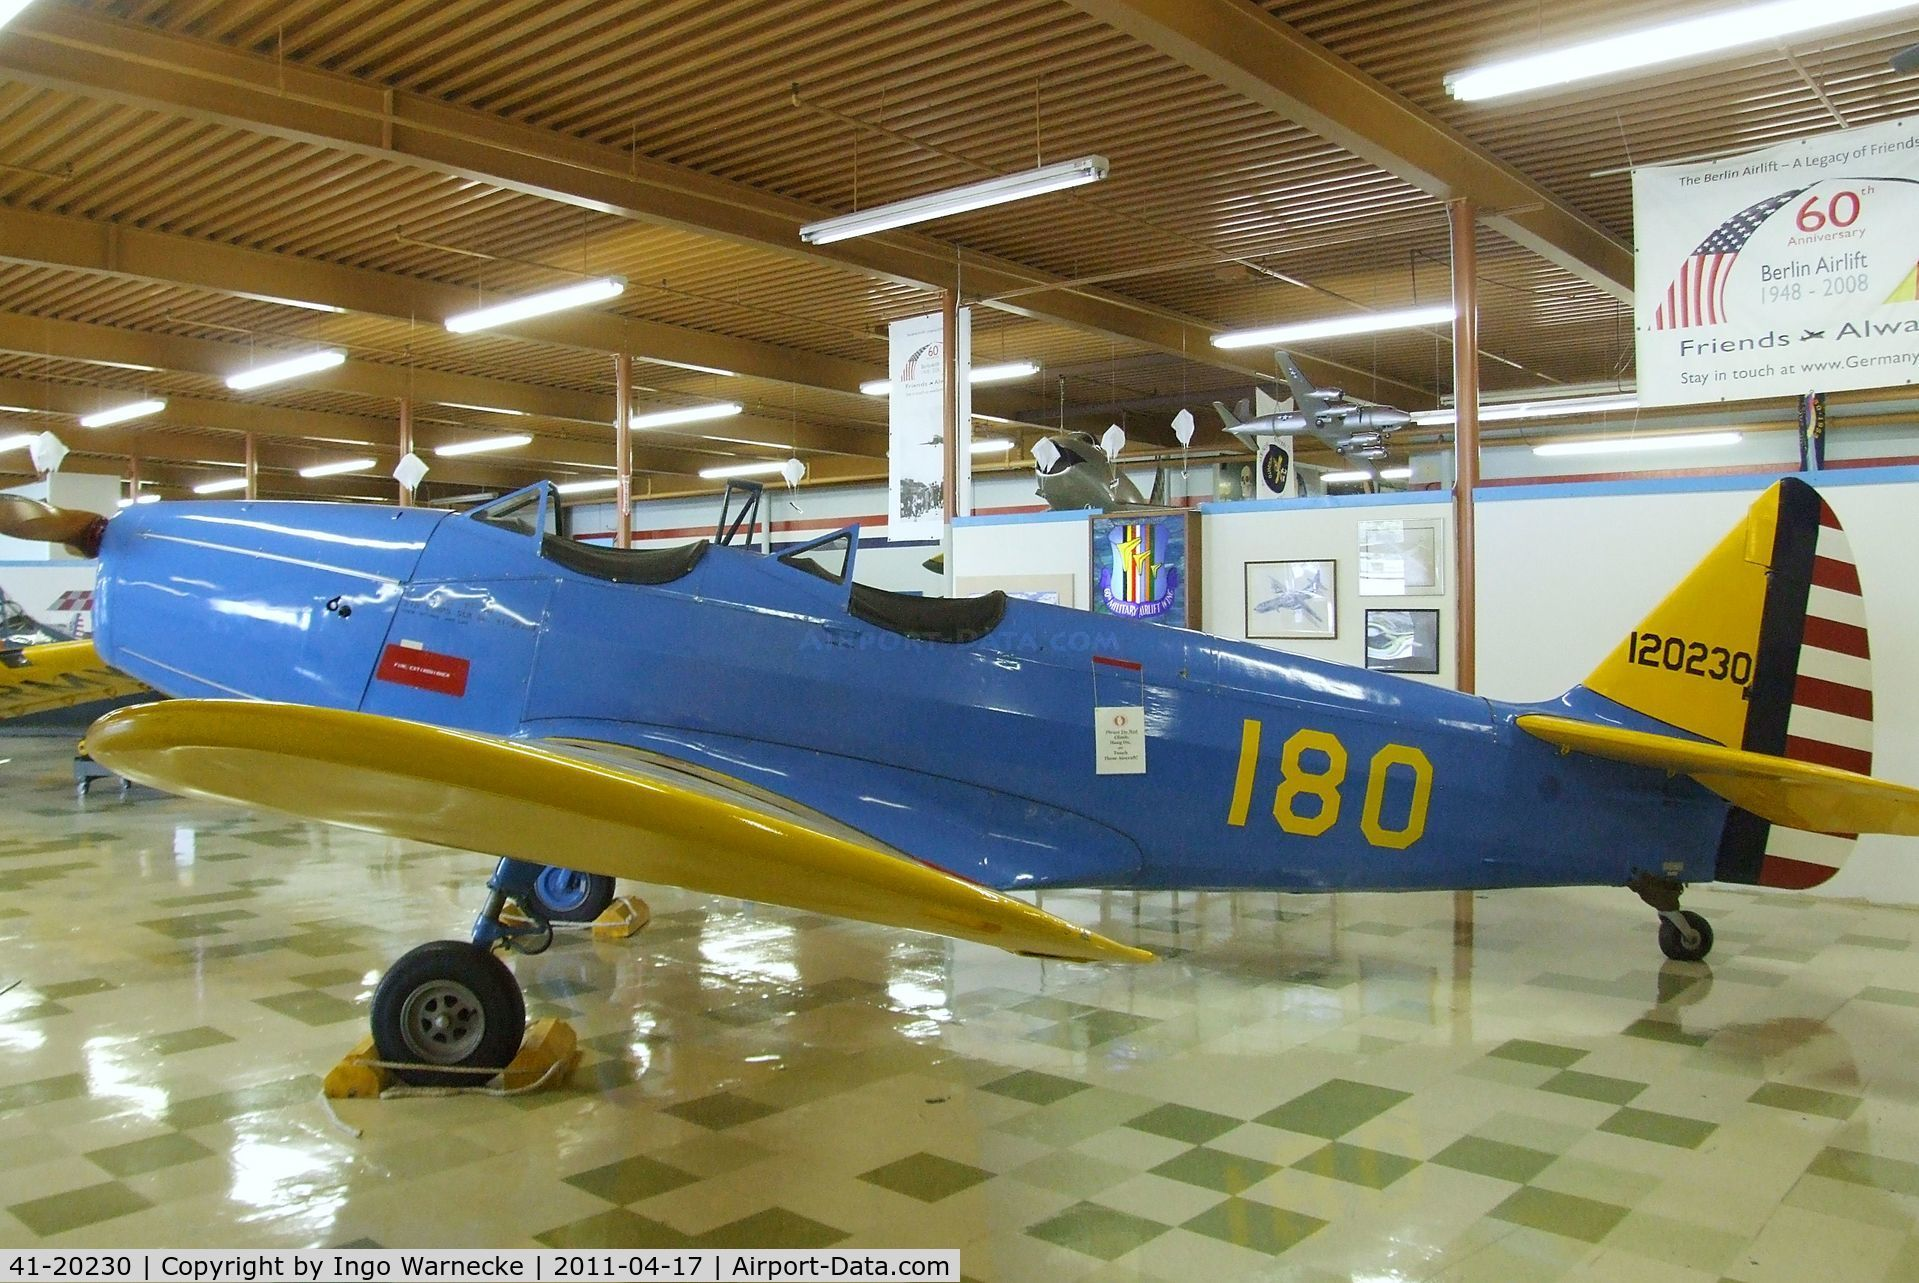 41-20230, Fairchild PT-19A-FA C/N not found 41-20230, Fairchild PT-19A at the Travis Air Museum, Travis AFB Fairfield CA